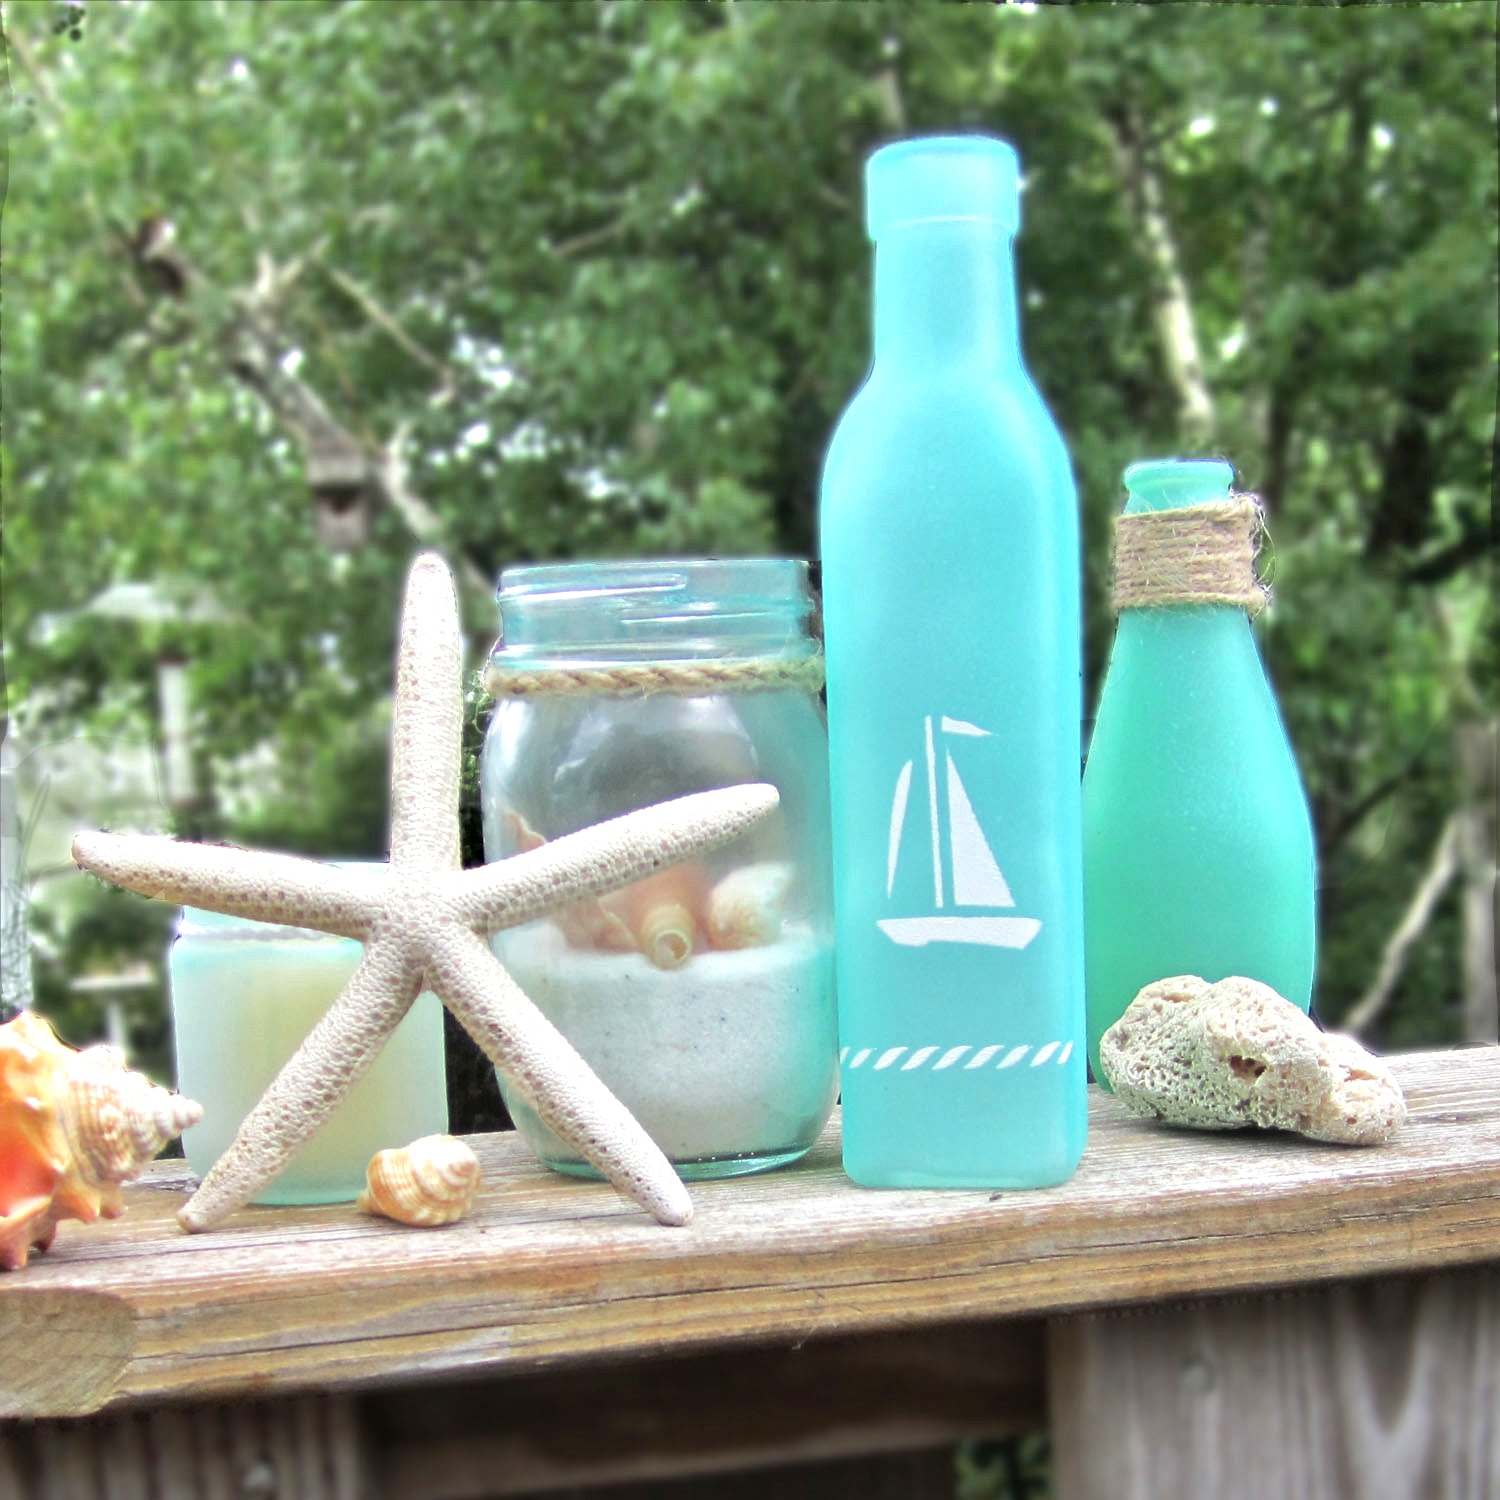 Nautical crafts to make - Turning Jars Into Beach Glass Other Modern Nautical D Cor Using Martha Stewart Crafts Spray Paint System Nautical Stencils